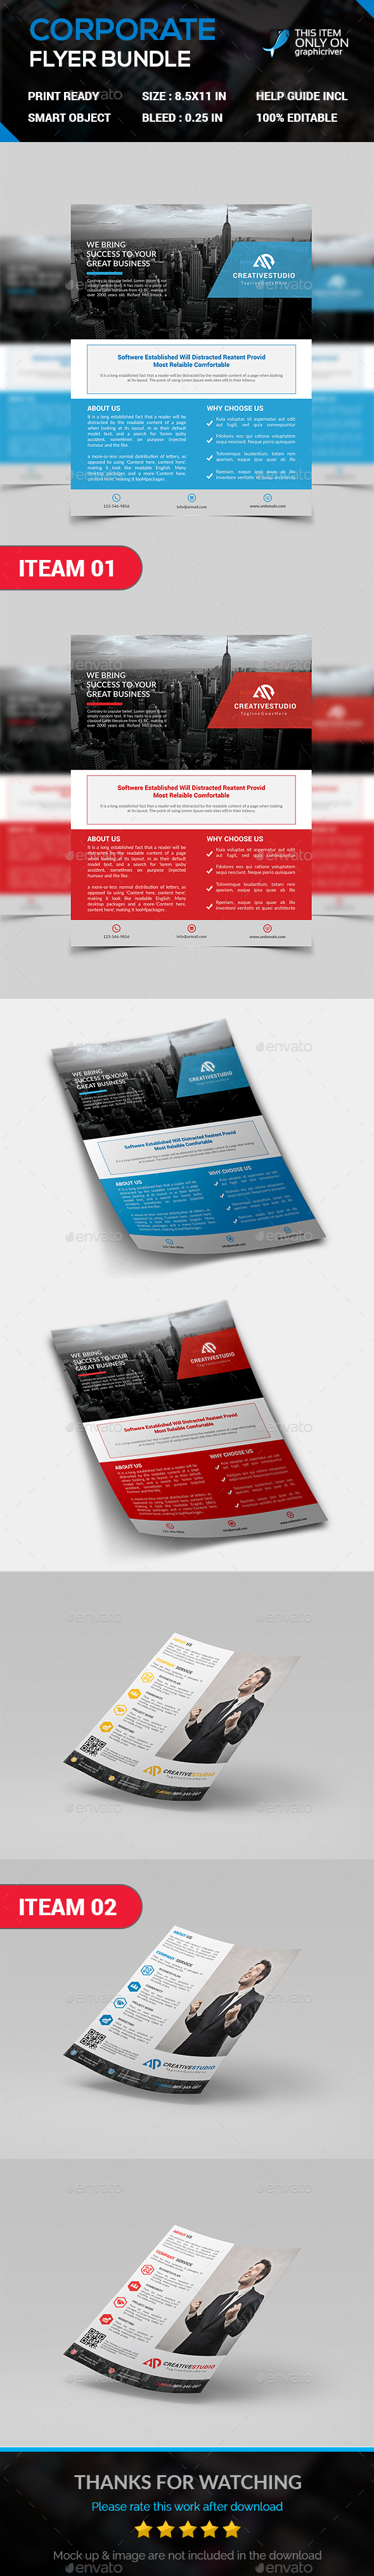 Corporate Flyer Bundle. - Corporate Flyers